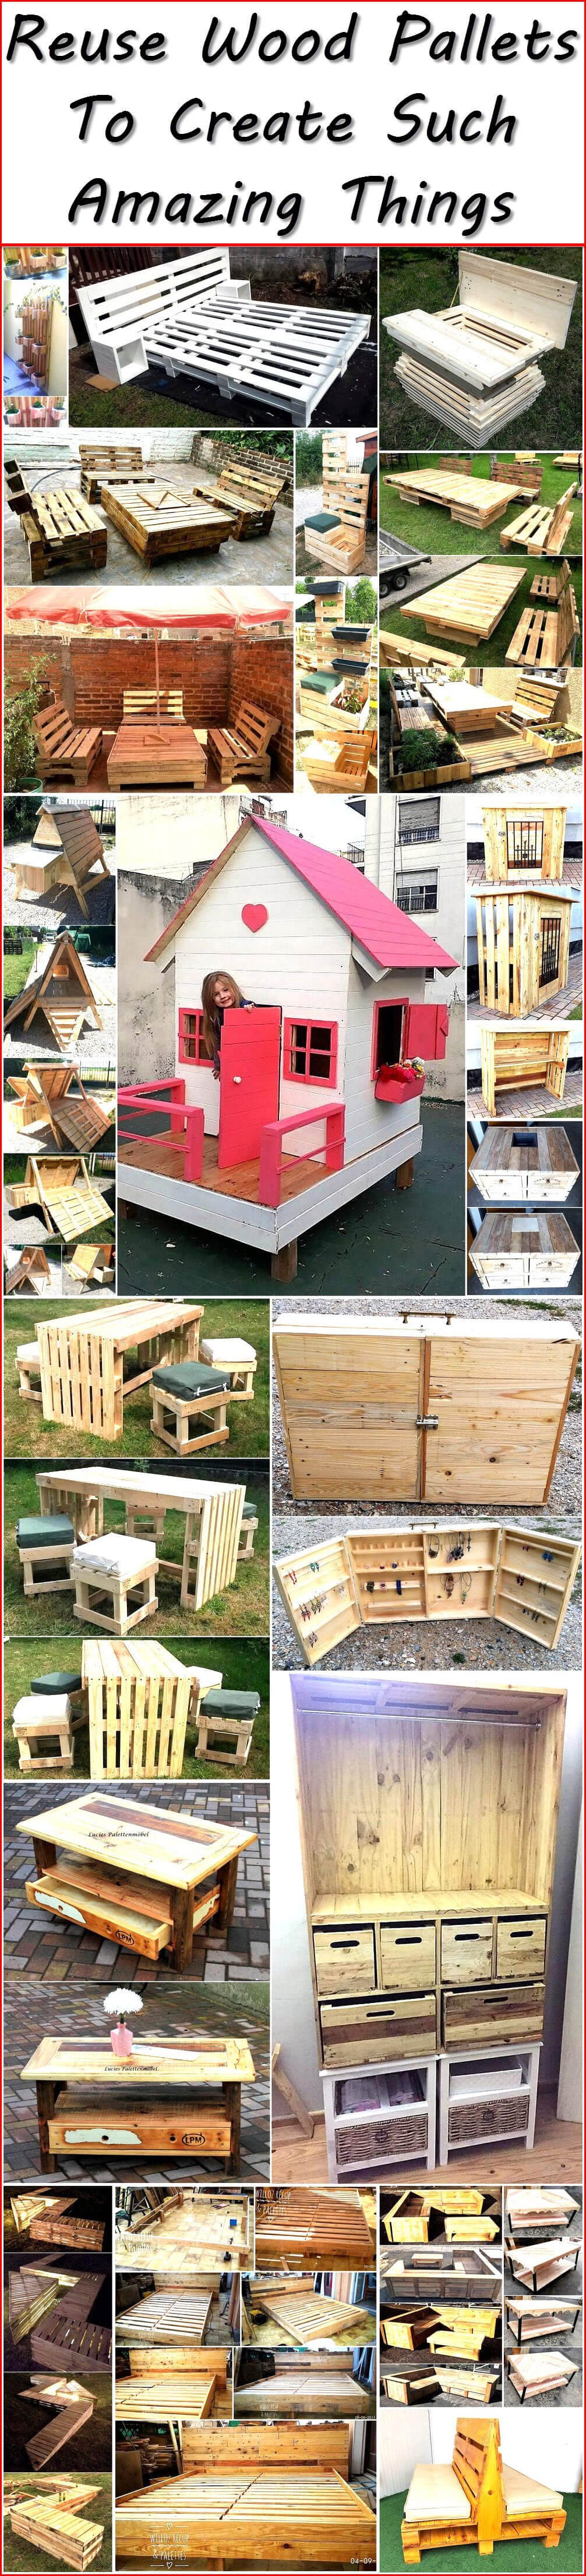 Reuse Wood Pallets To Create Such Amazing Things